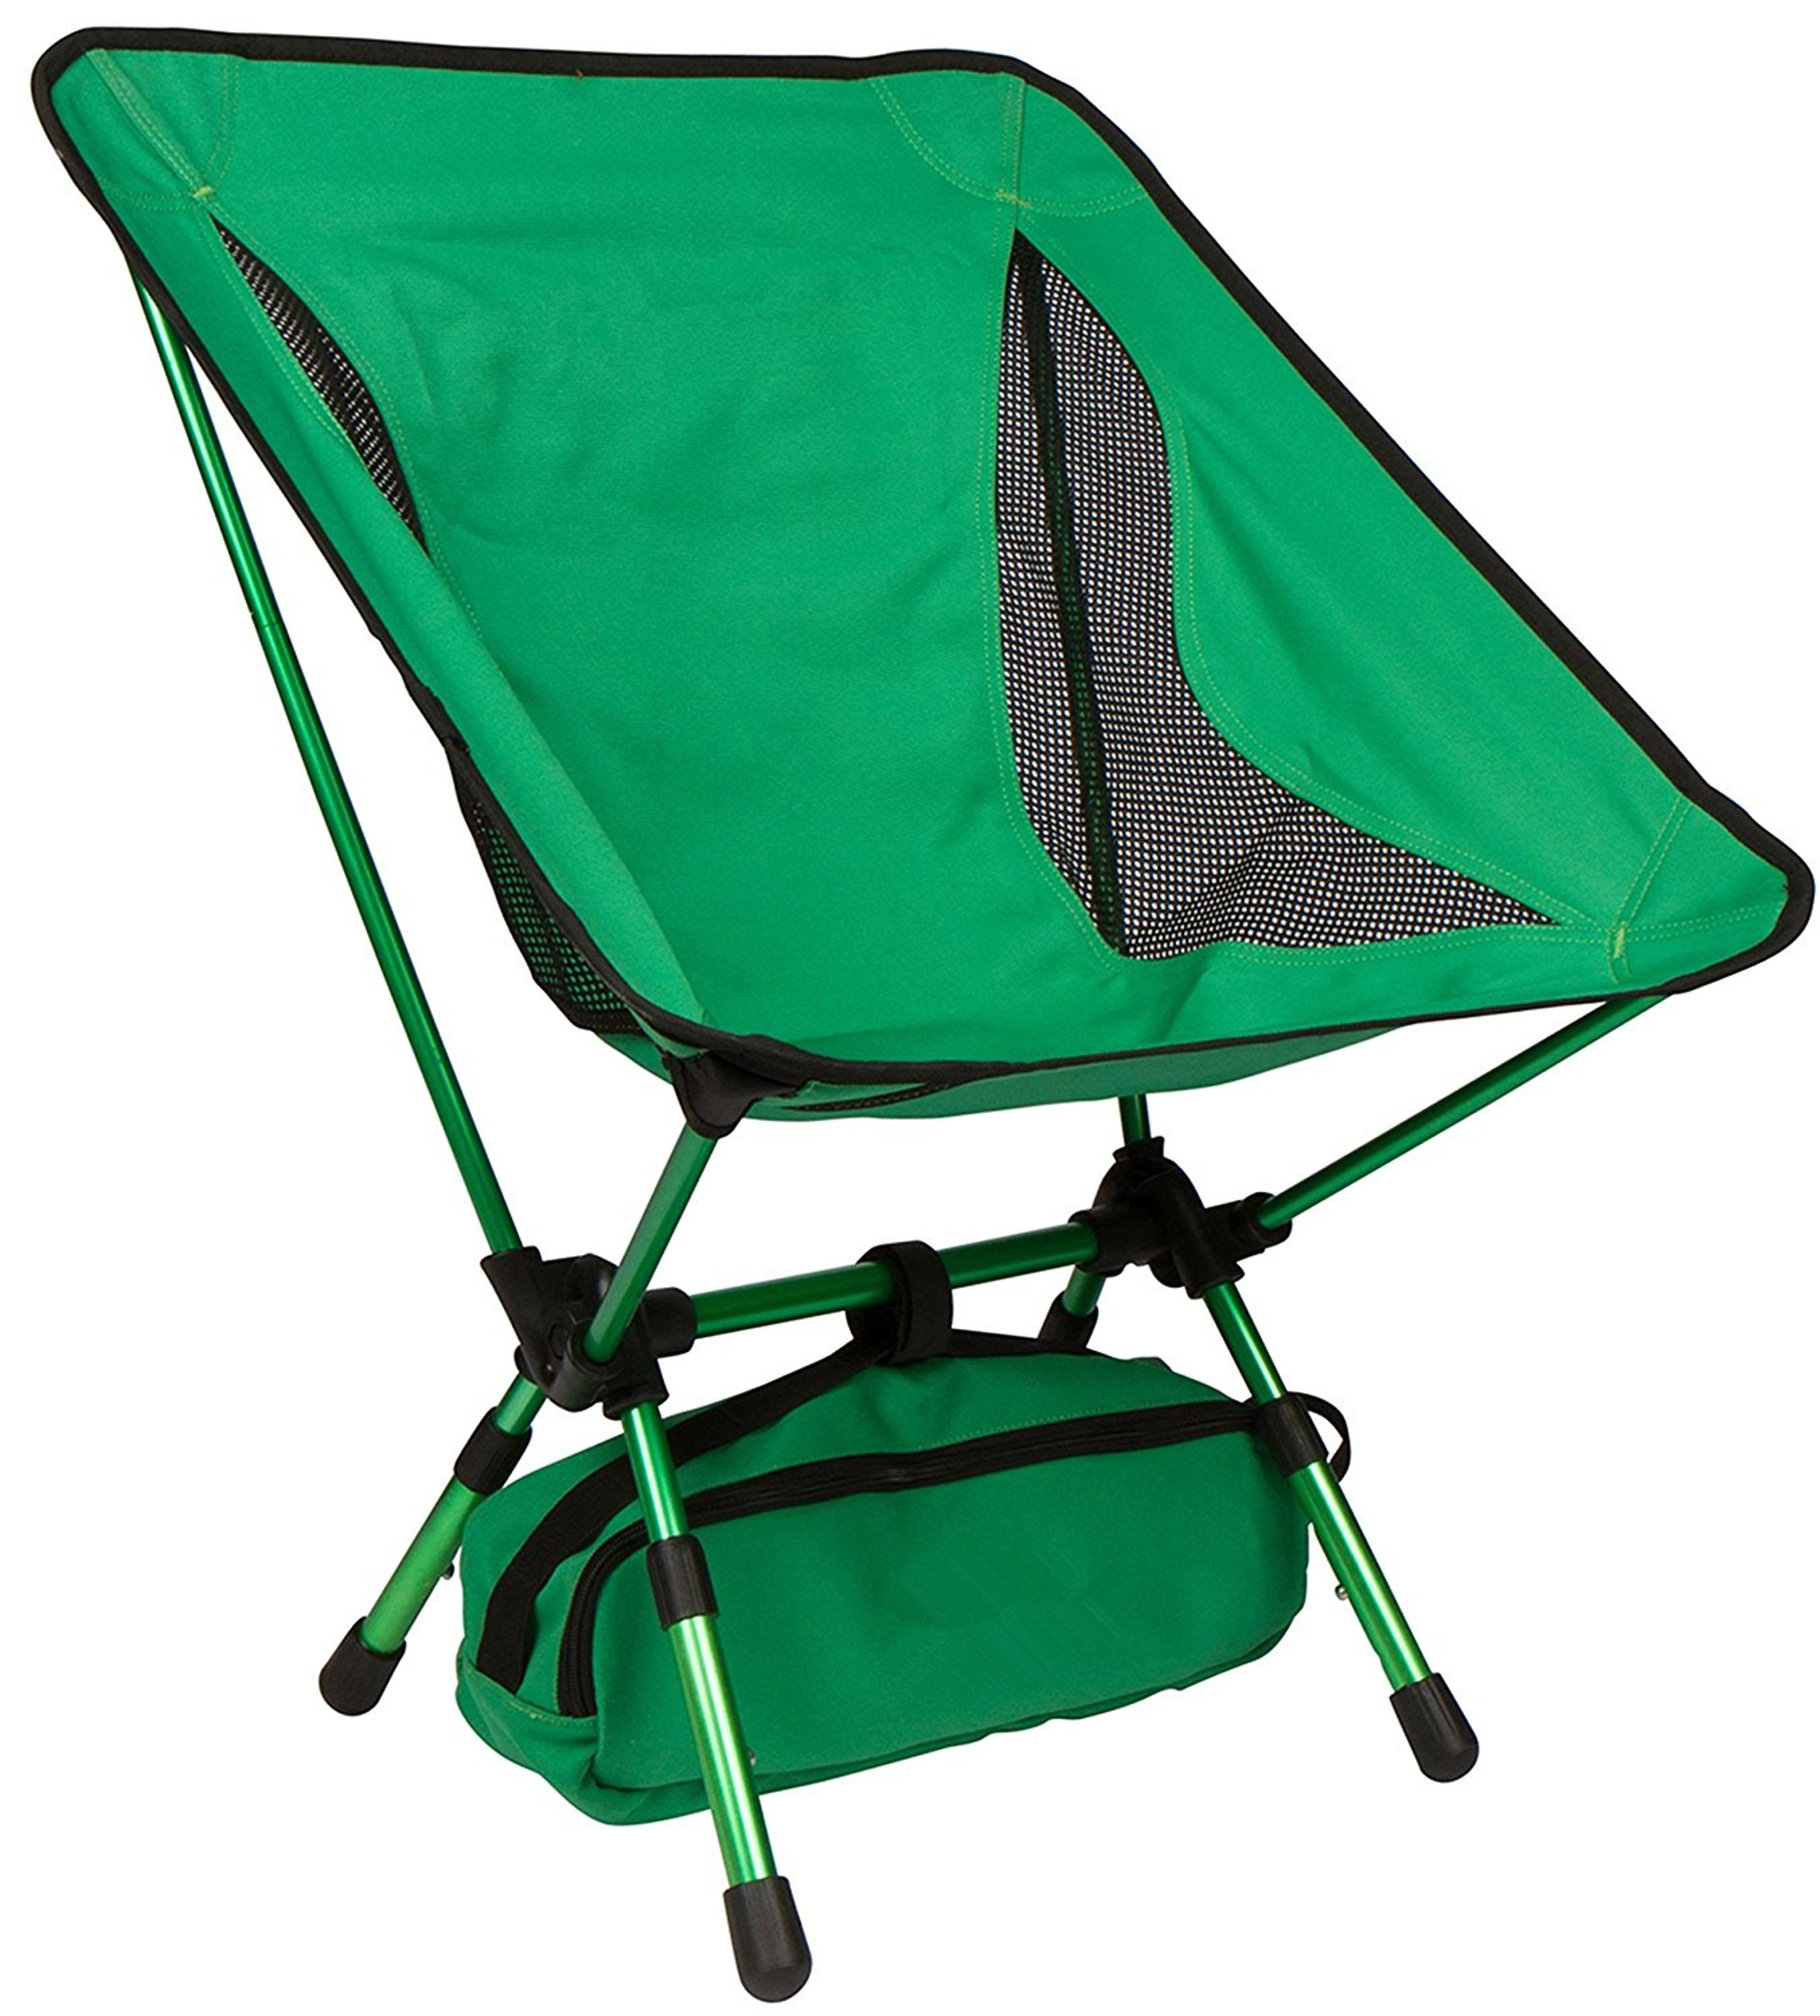 Portable Camping Chairs Adjustable Height pact Ultralight